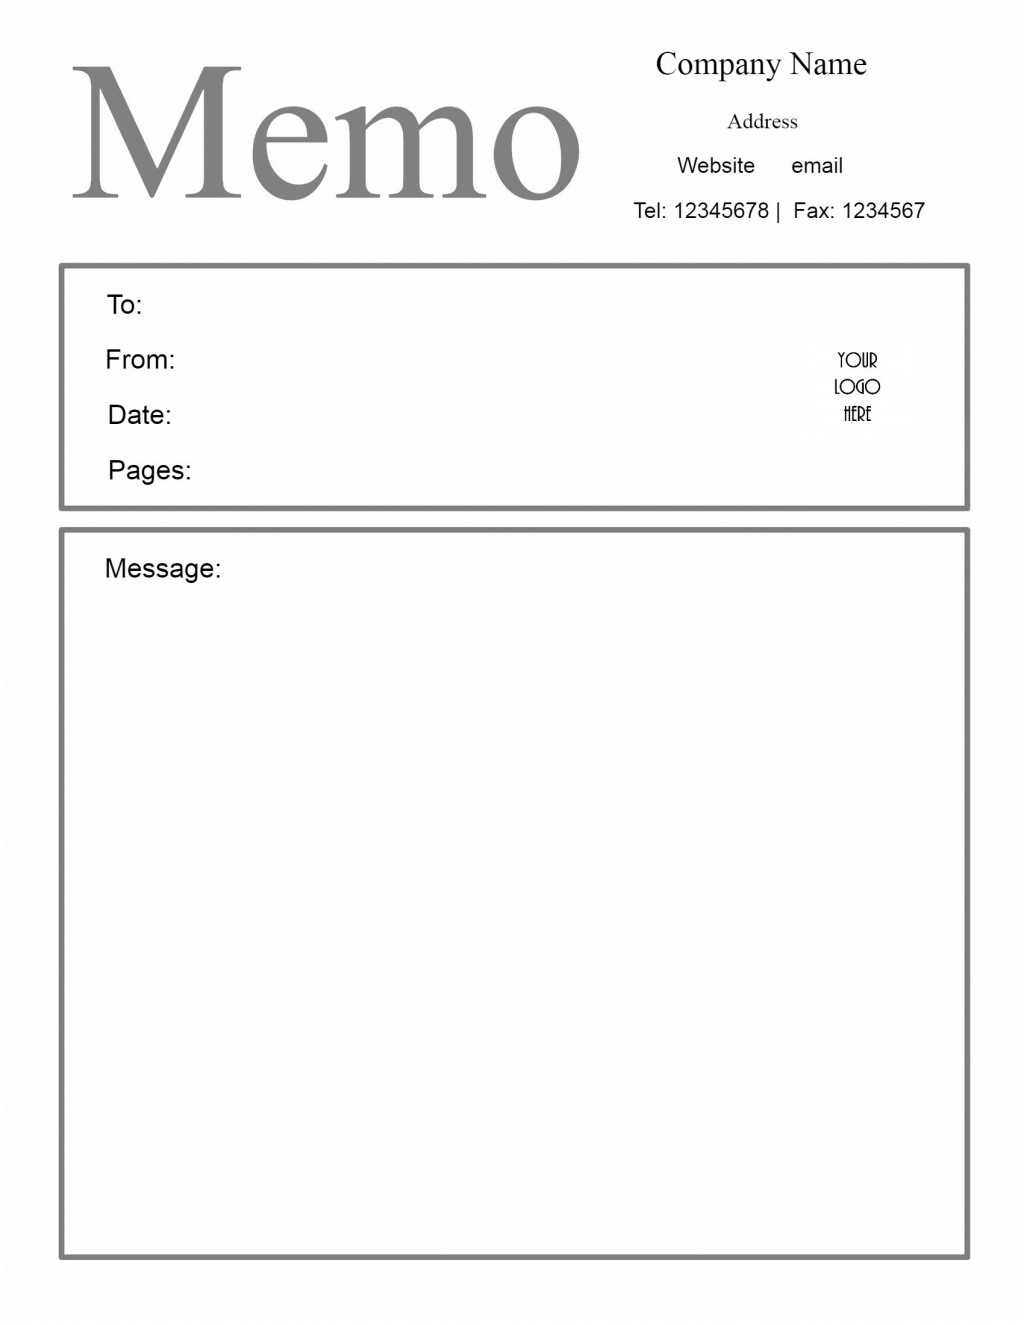 008 Rare Memo Template For Word High Resolution  Free Cash Sample 2013Large